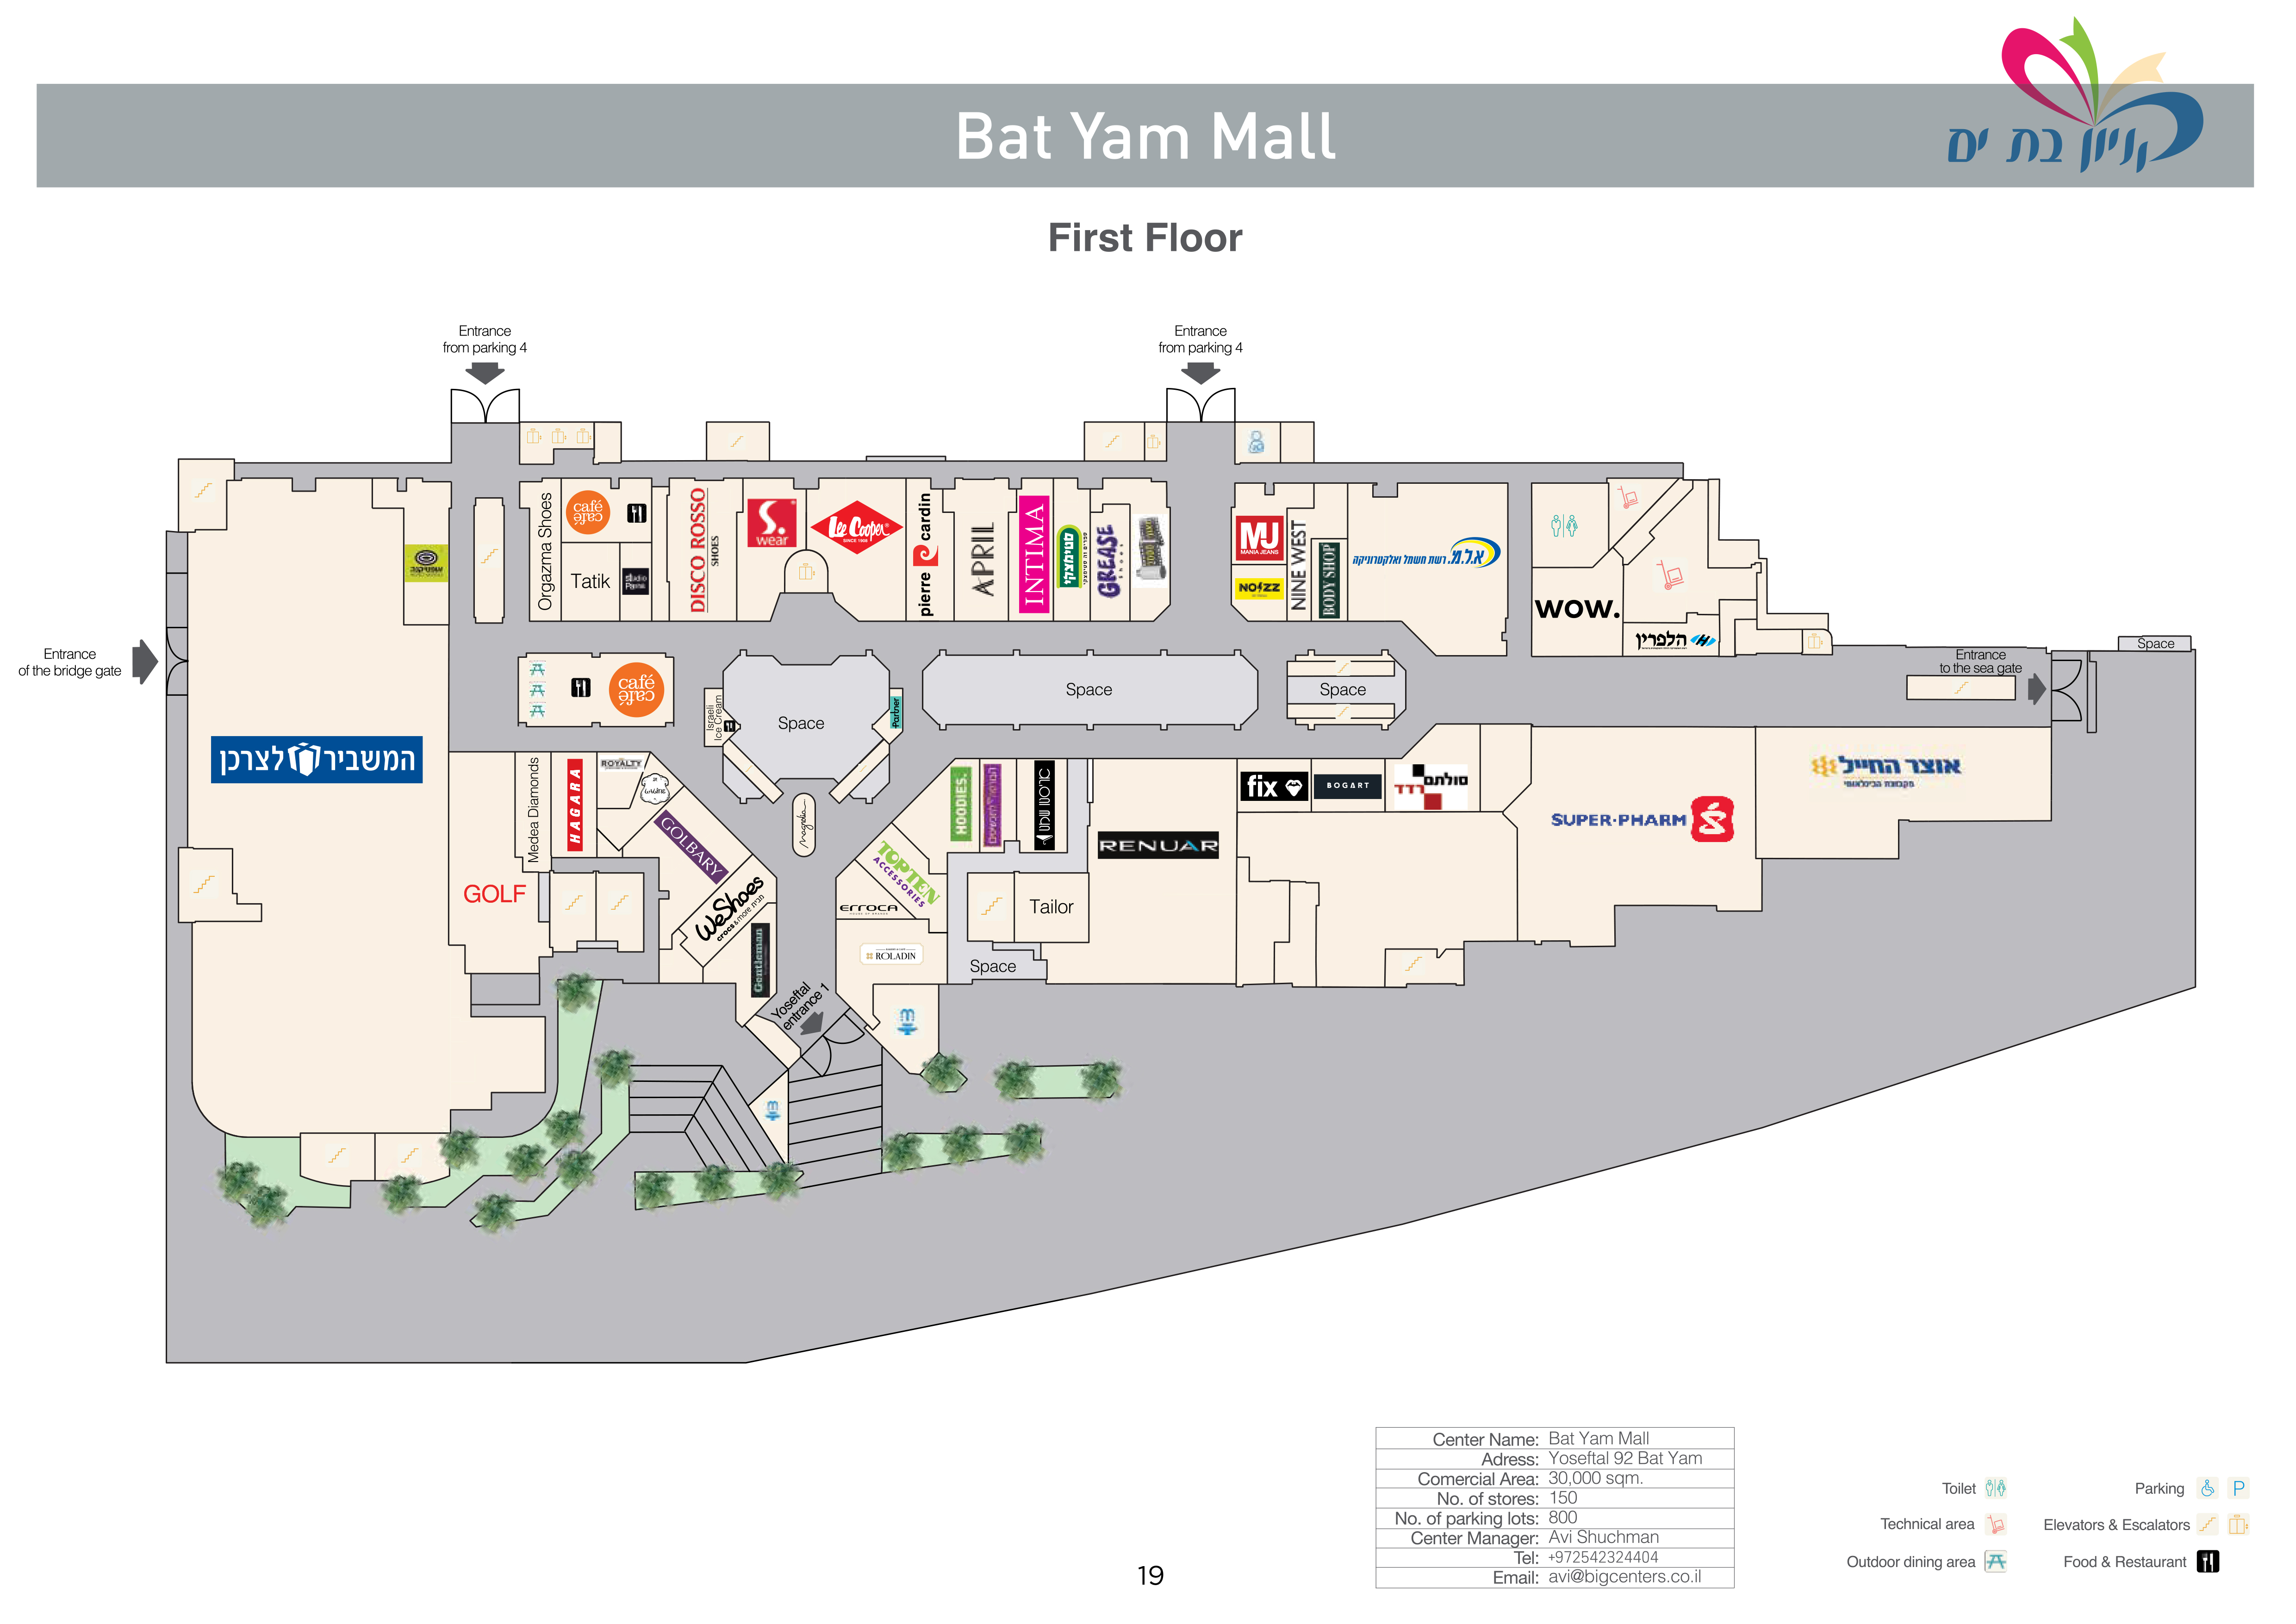 Bat Yam Mall First Floor